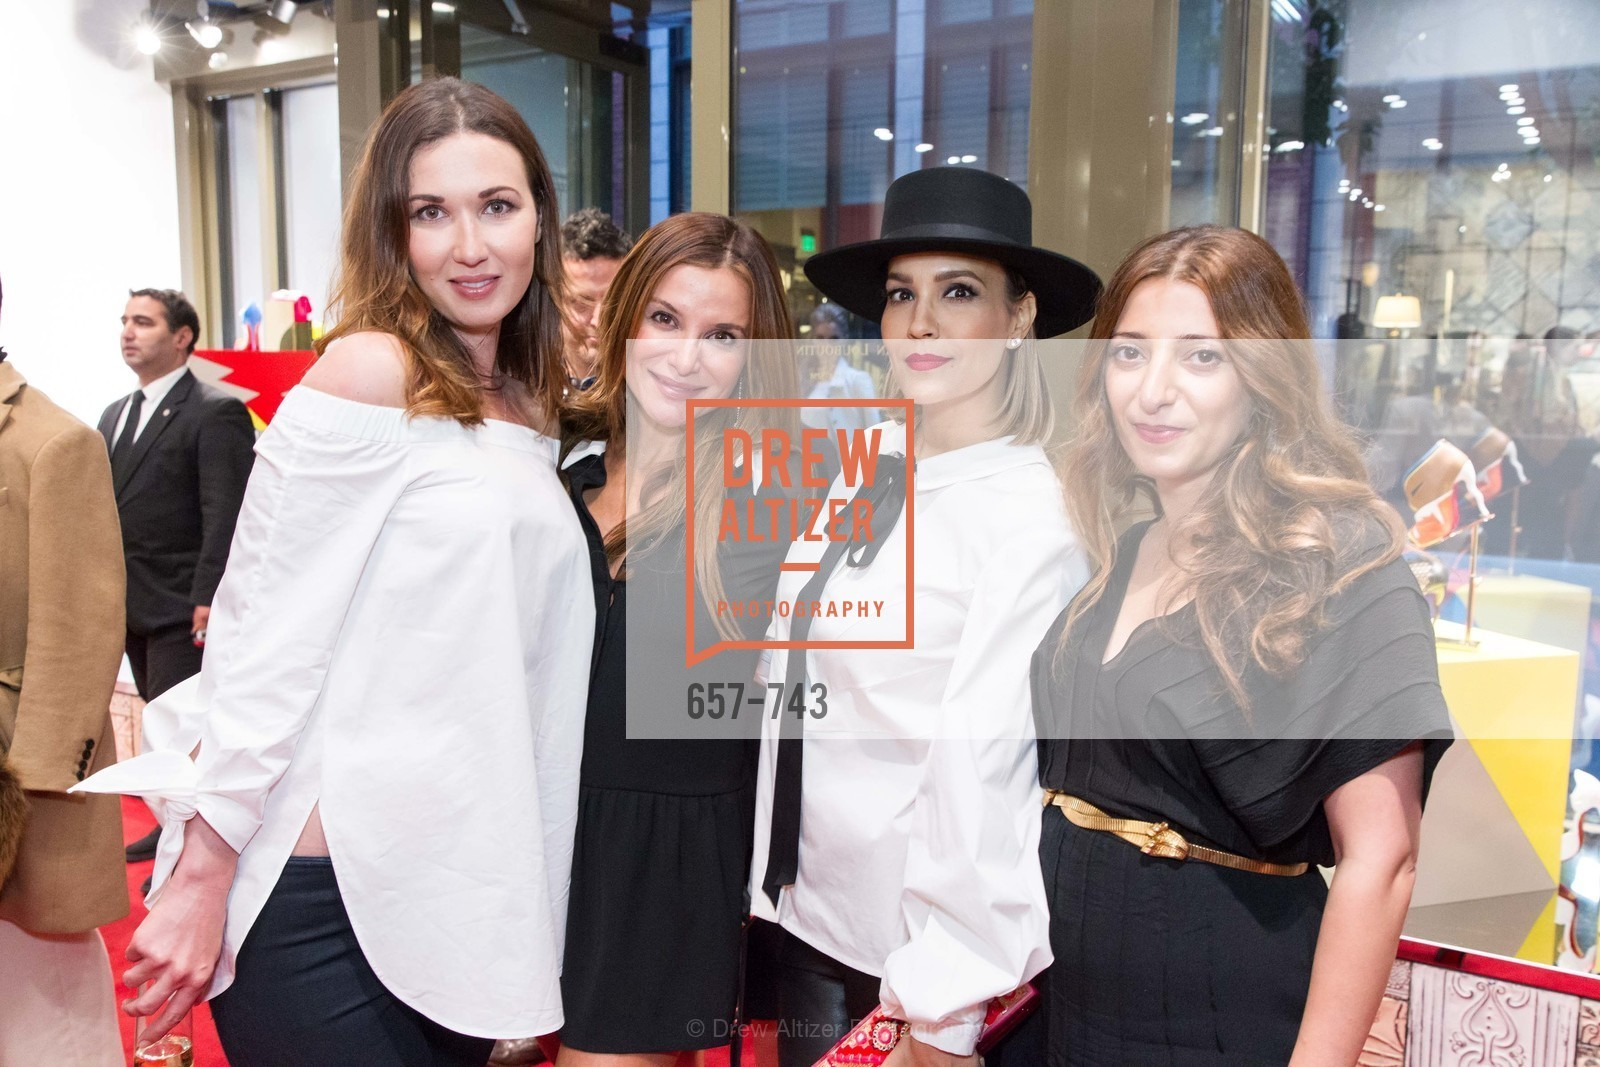 Camilla Papale, Claudia Ross, Lora DuBain, Kristina Musailov, CHRISTIAN LOUBOUTIN Anniversary Party, US, May 21st, 2015,Drew Altizer, Drew Altizer Photography, full-service agency, private events, San Francisco photographer, photographer california